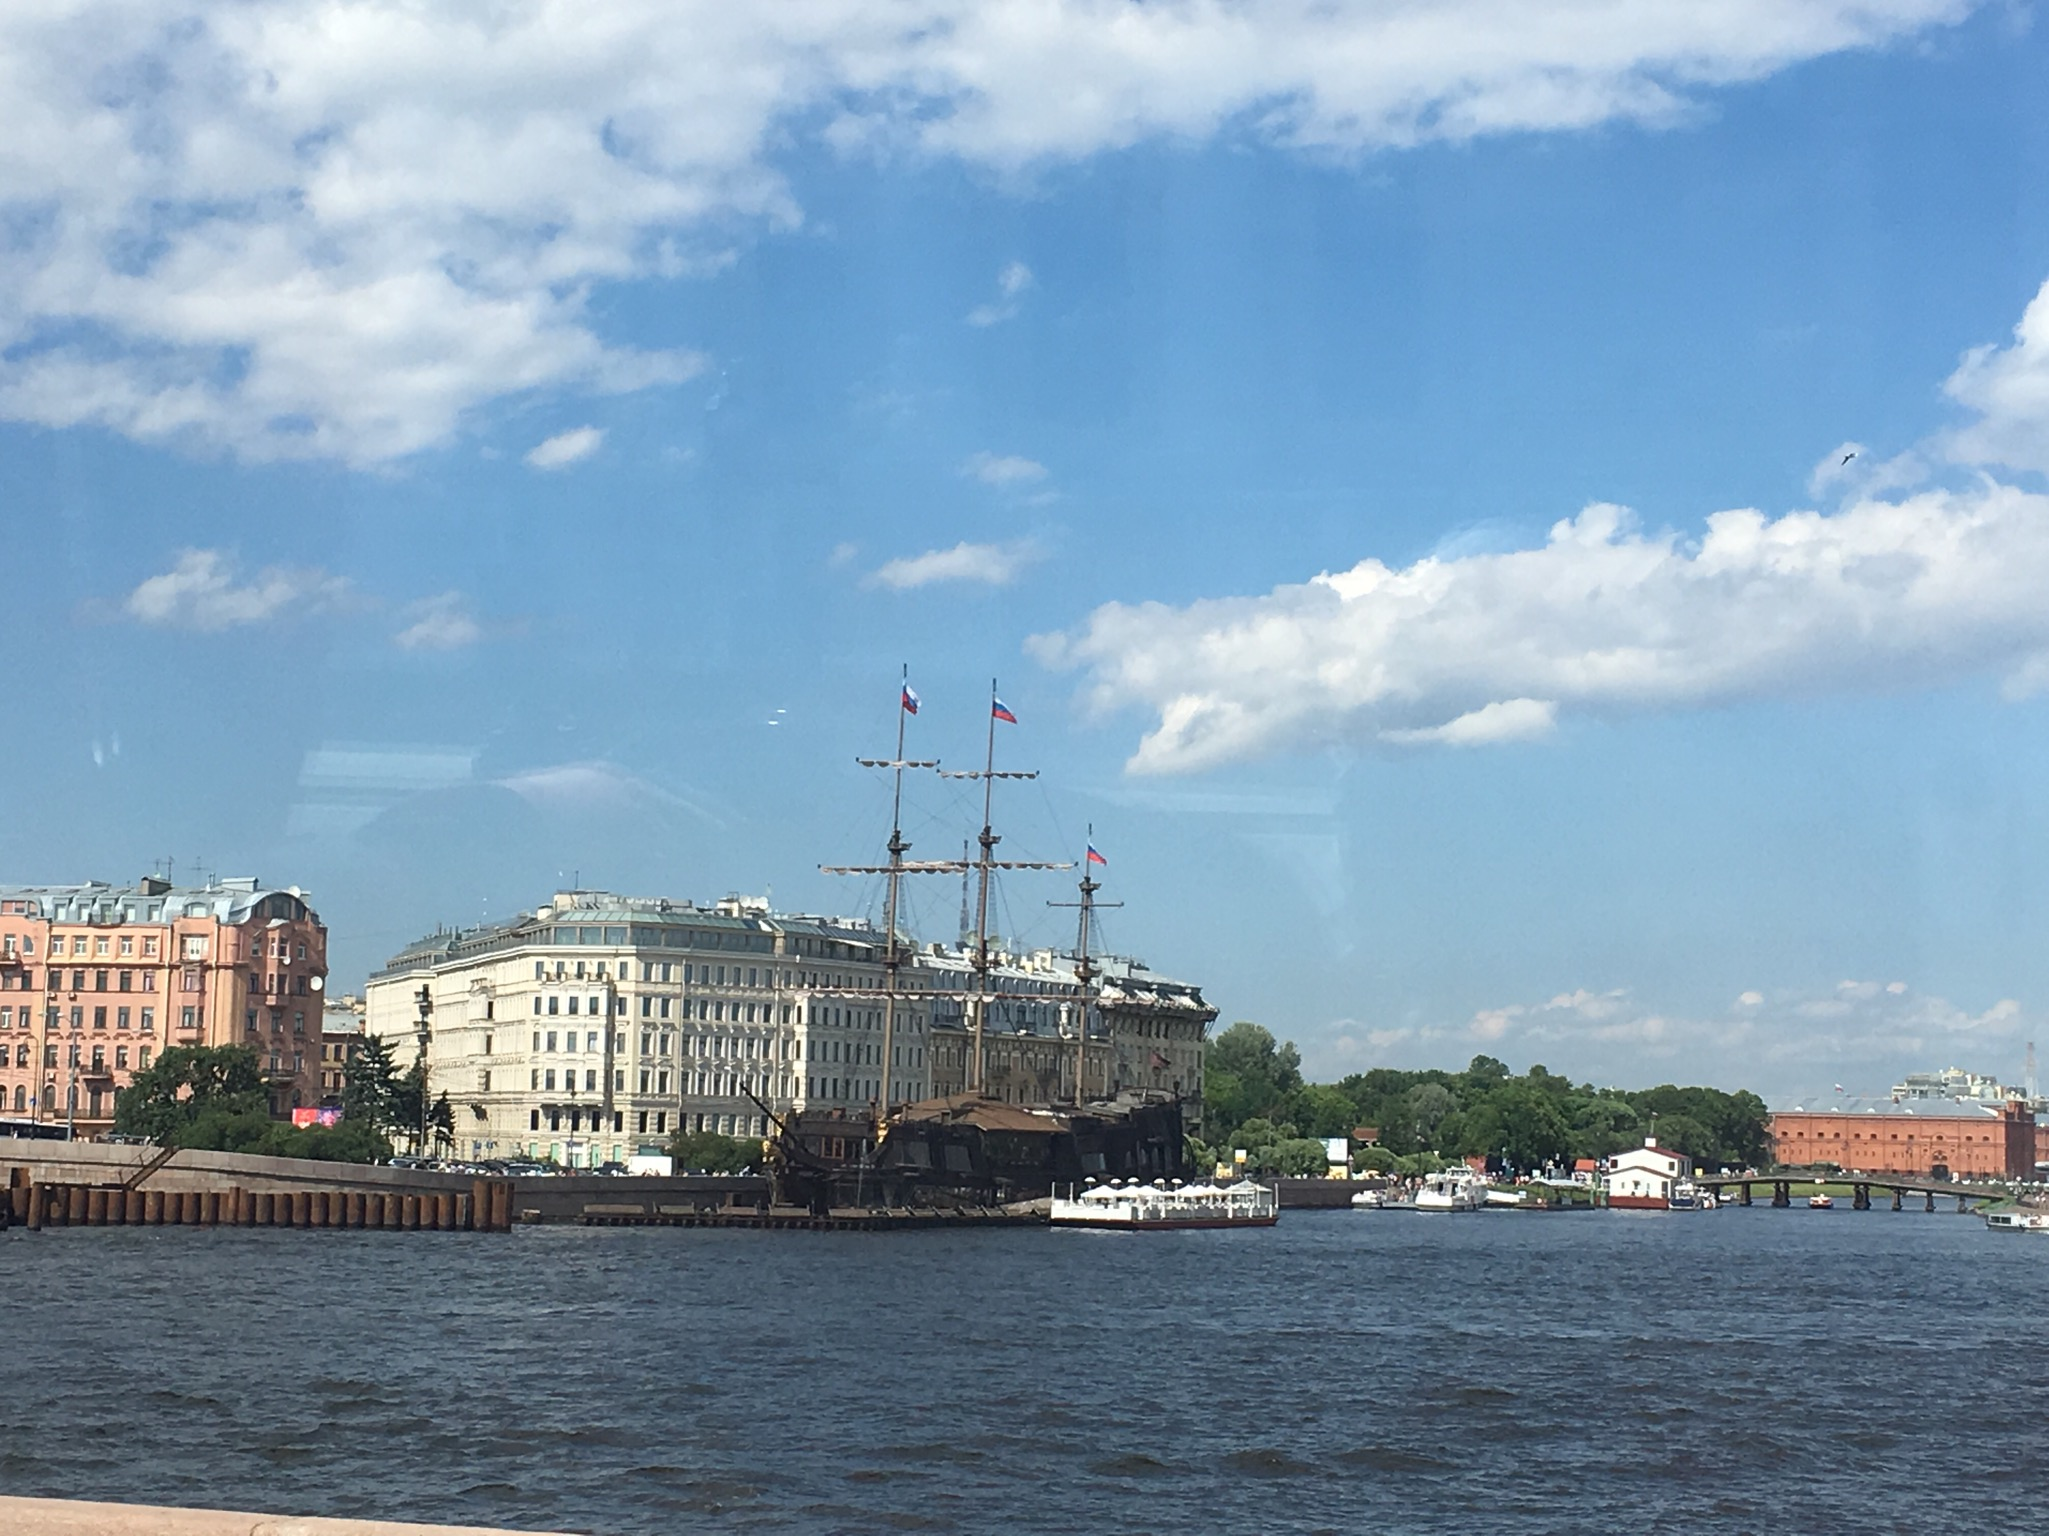 2016 Baltic Sea PerryGolf Cruise - St. Petersburg, Russia - PerryGolf.com